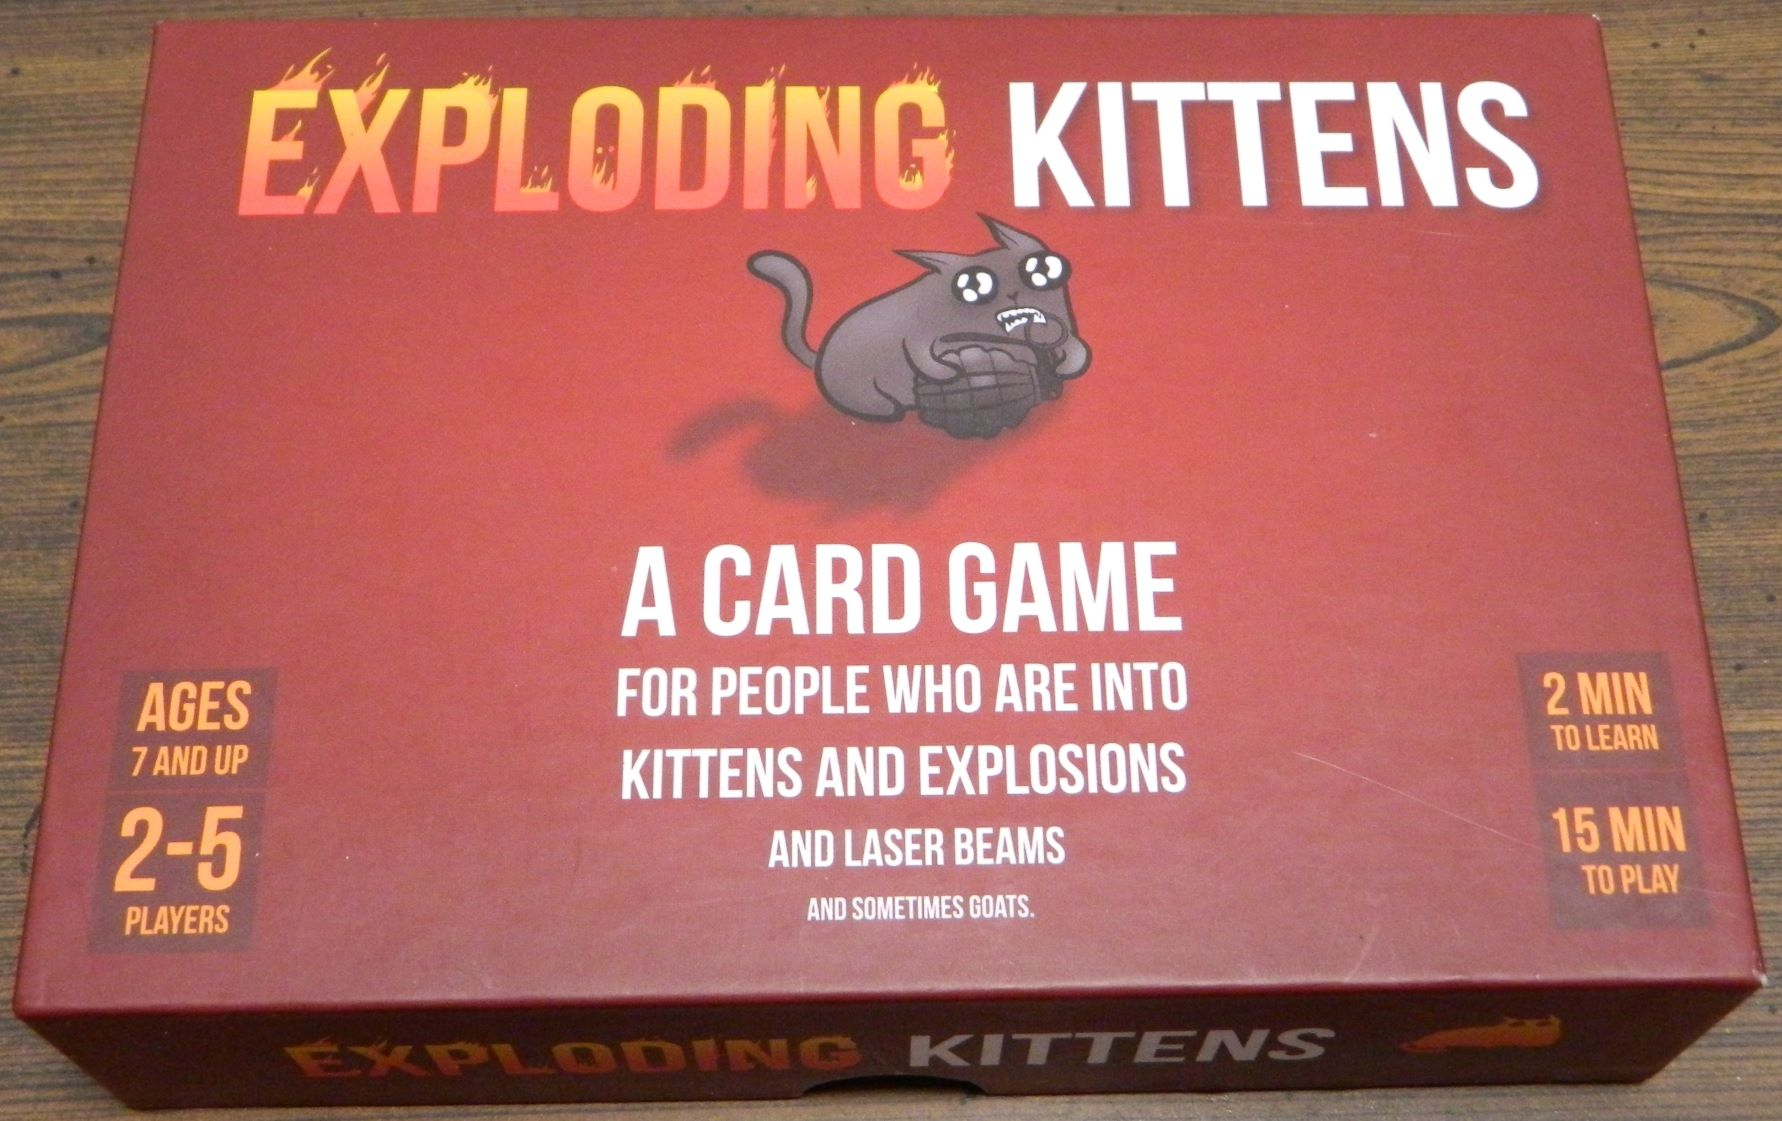 Box for Exploding Kittens